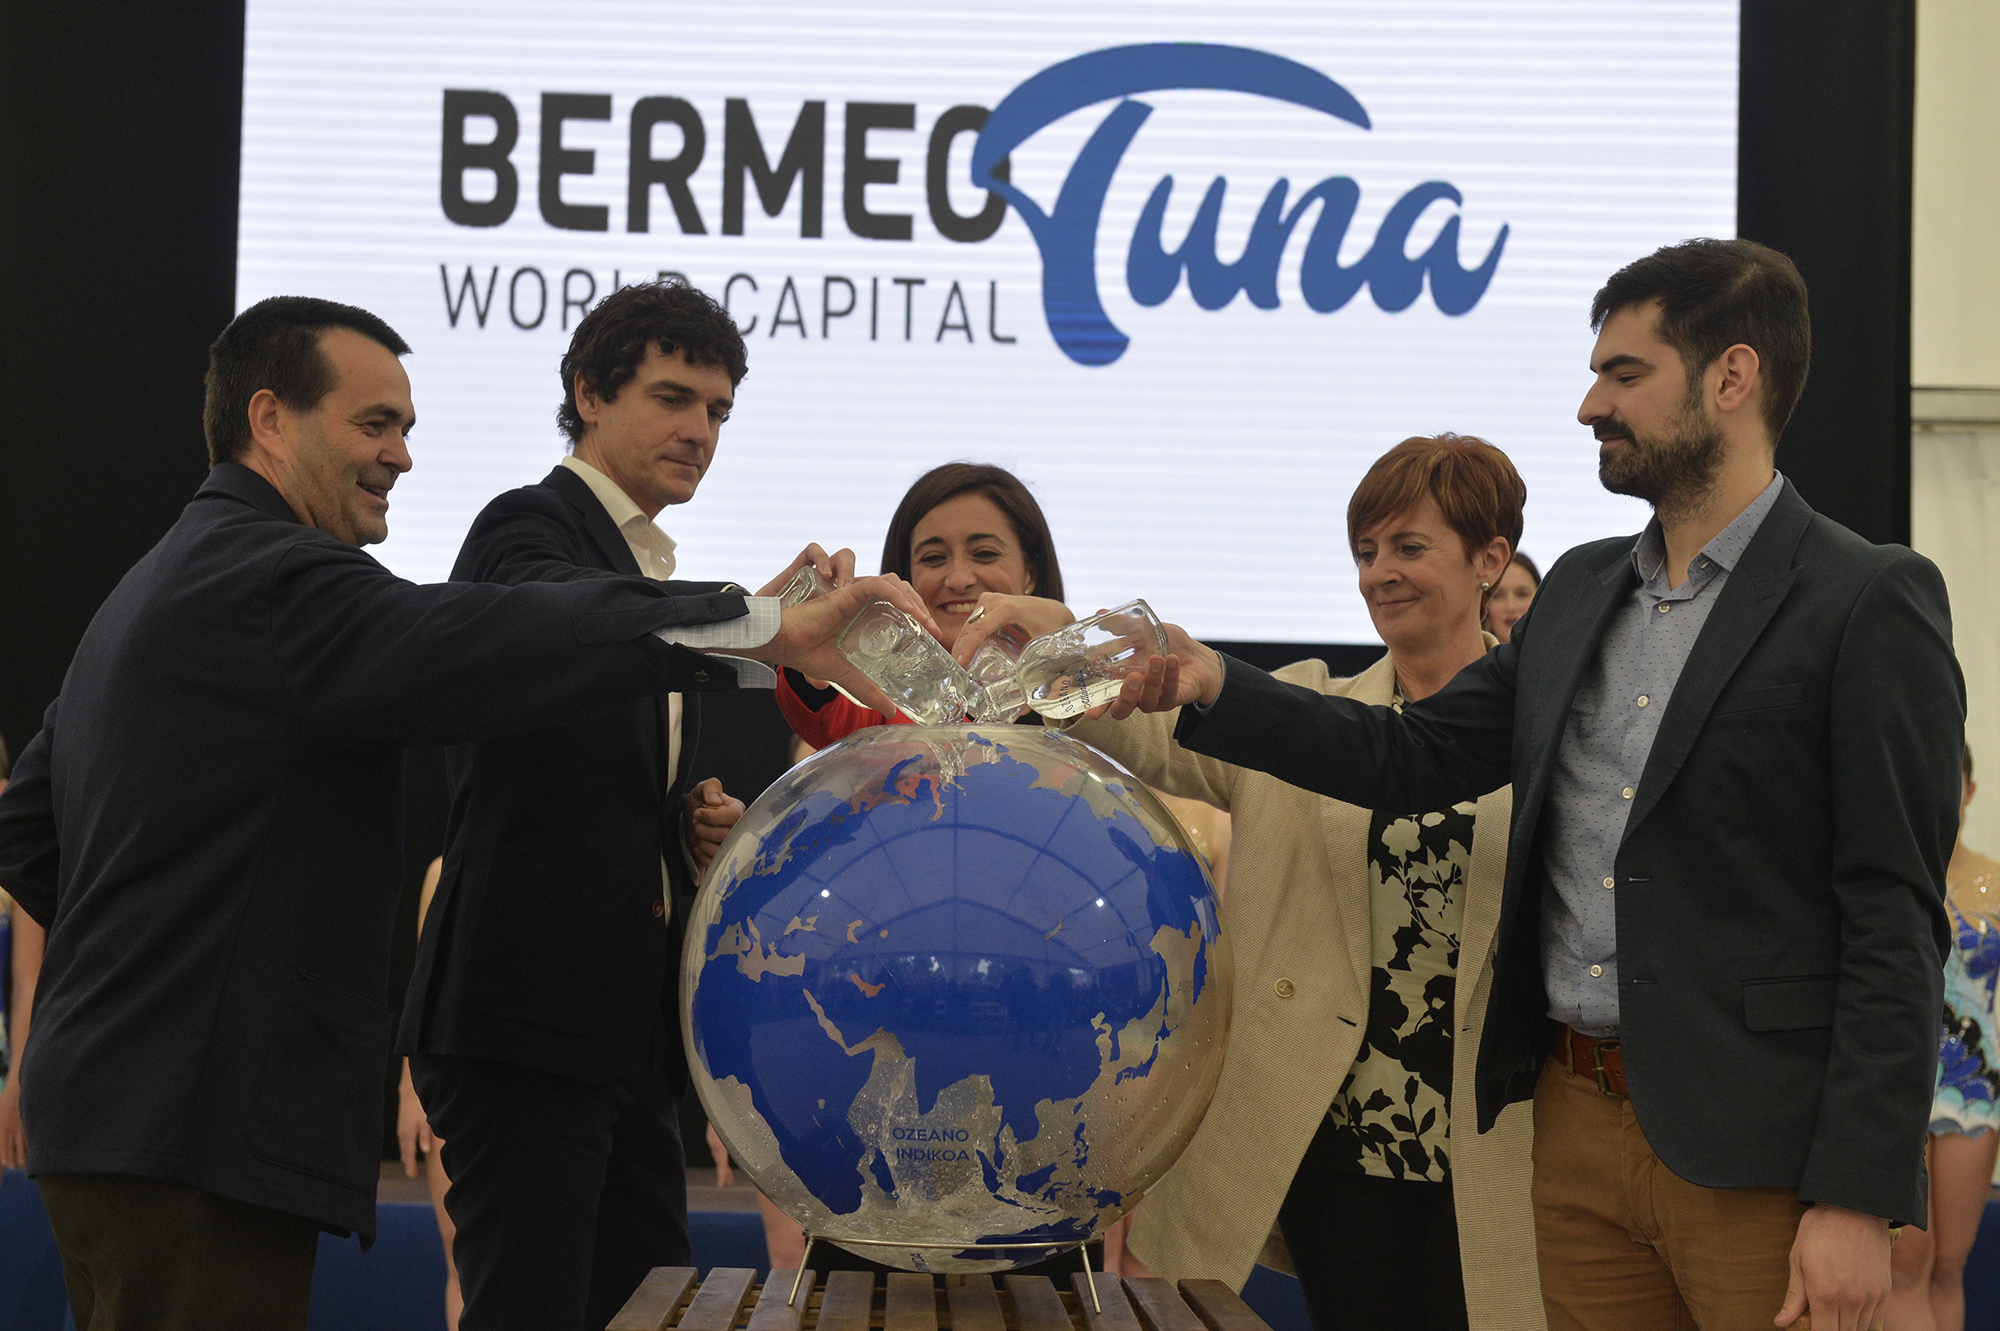 Bermeo_Tuna_World_Capital.jpg